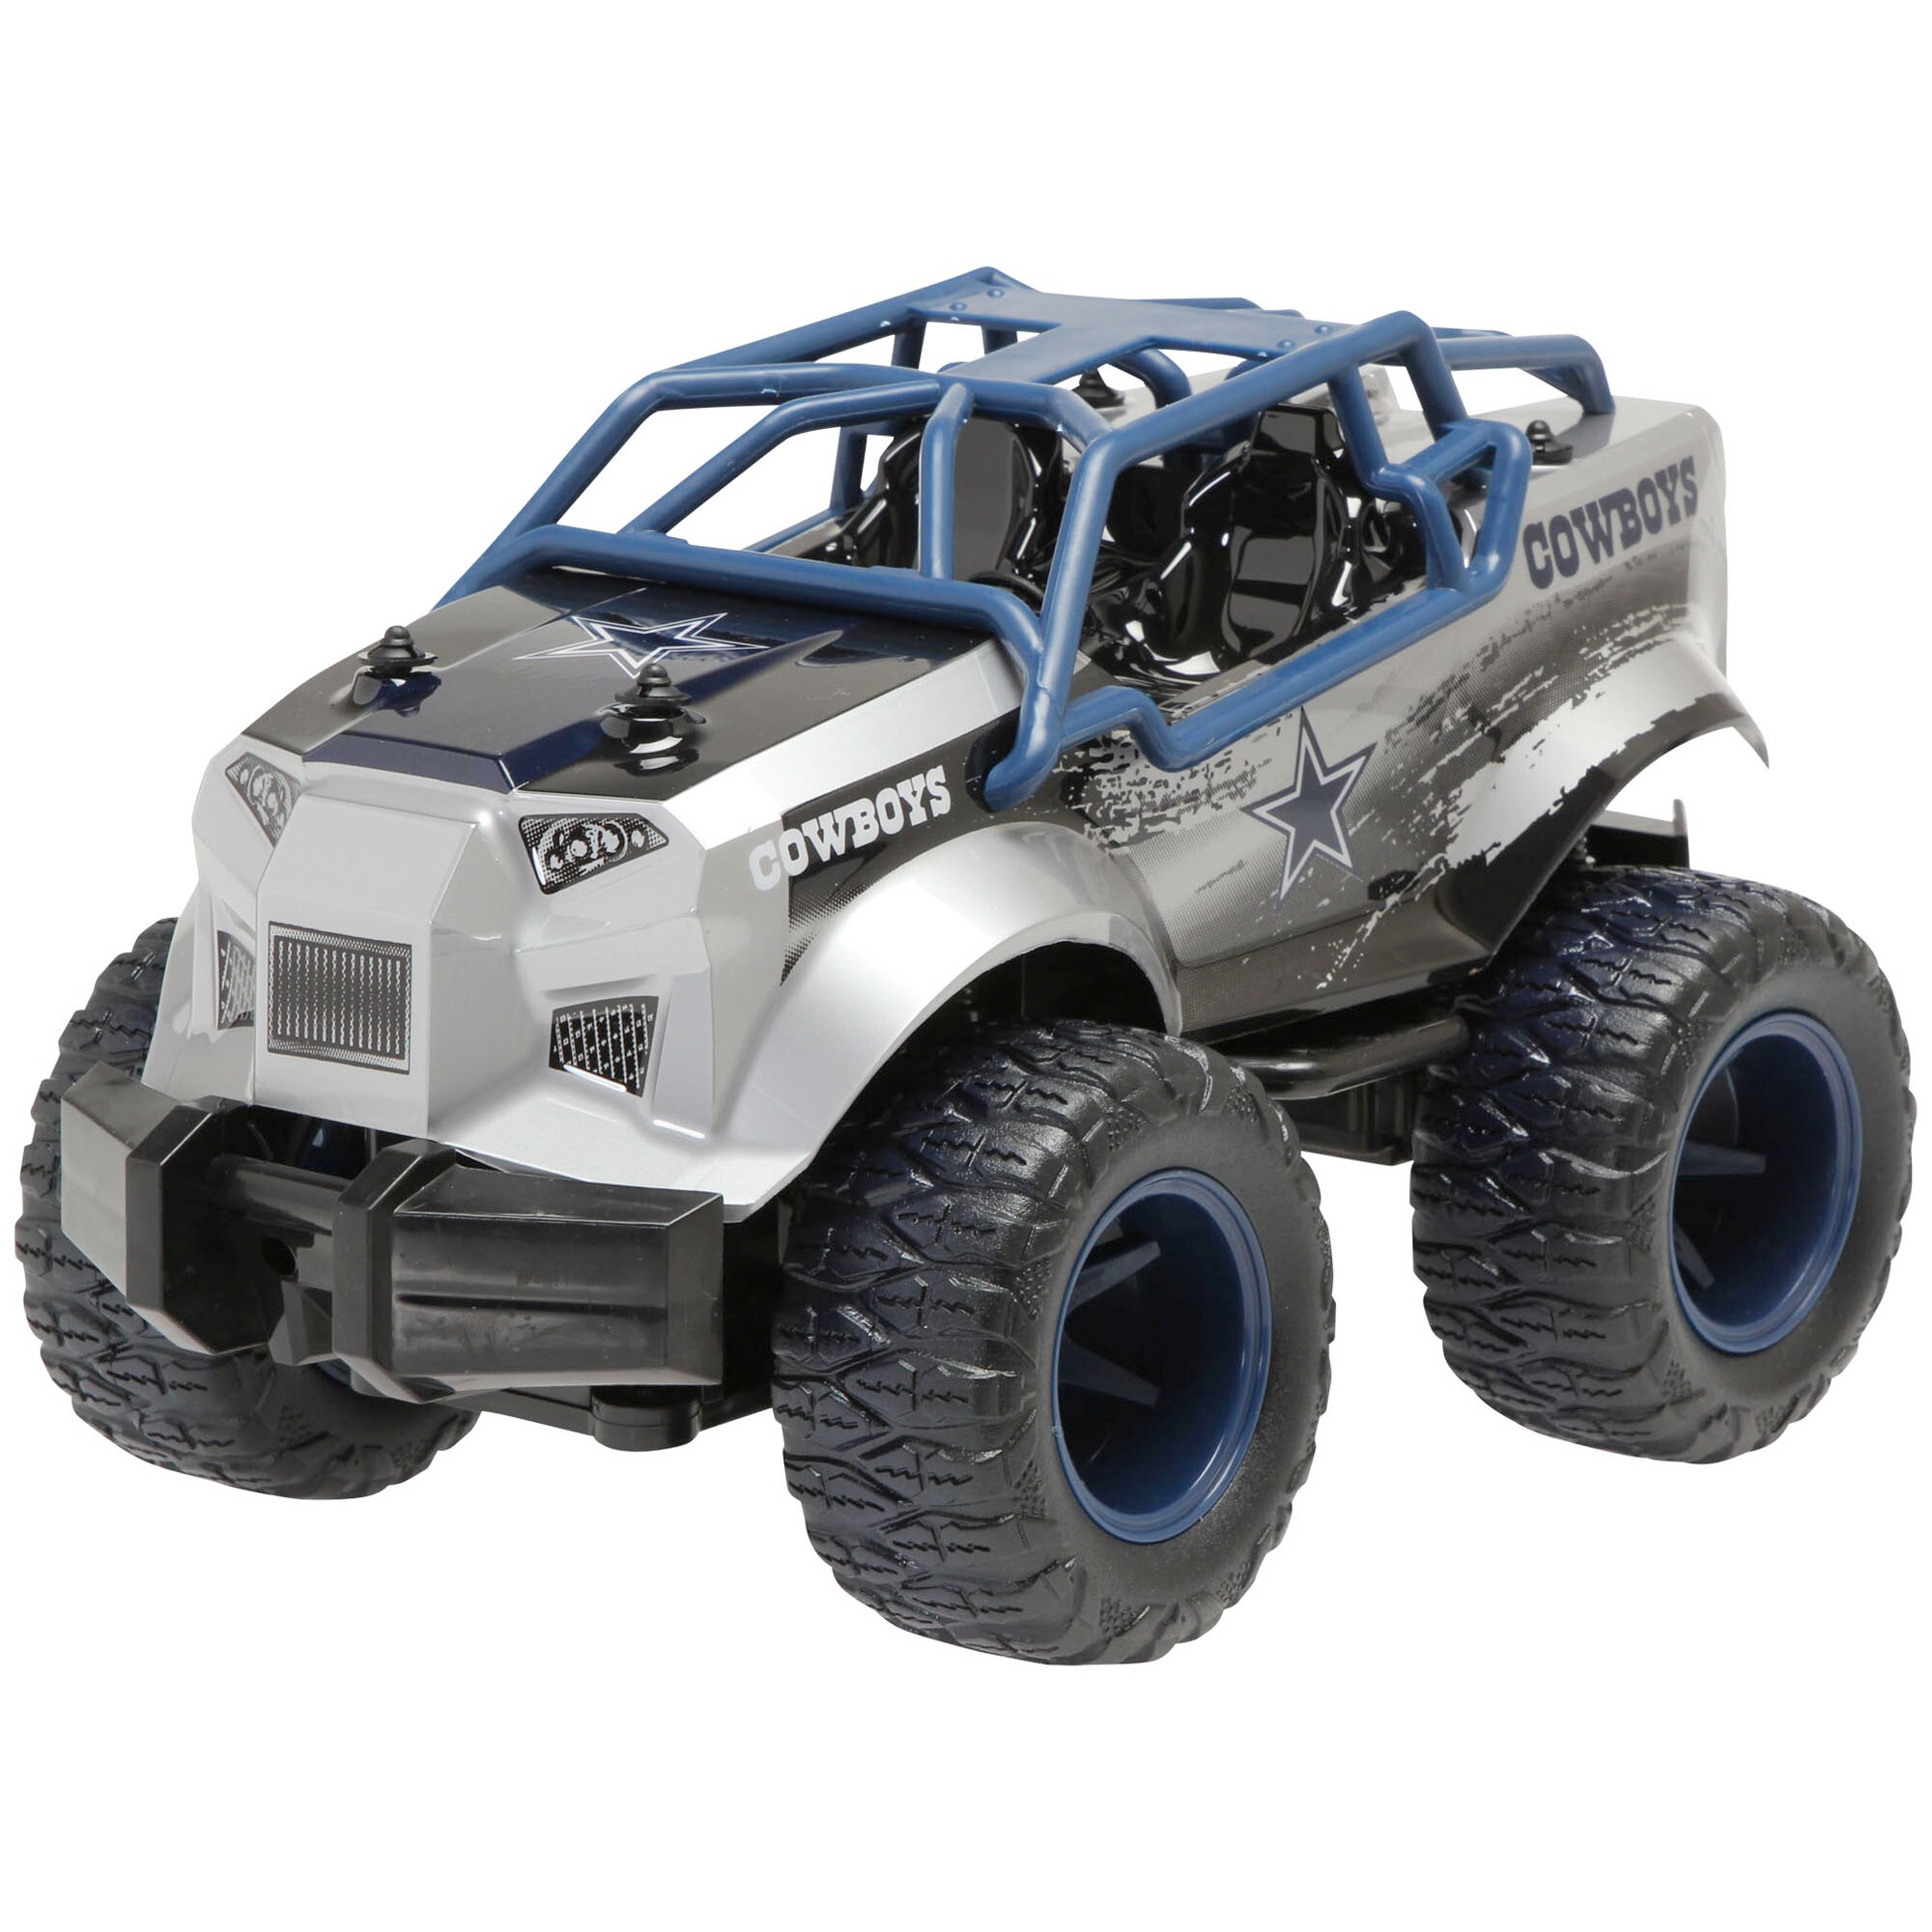 Dallas Cowboys Monster Truck Toy